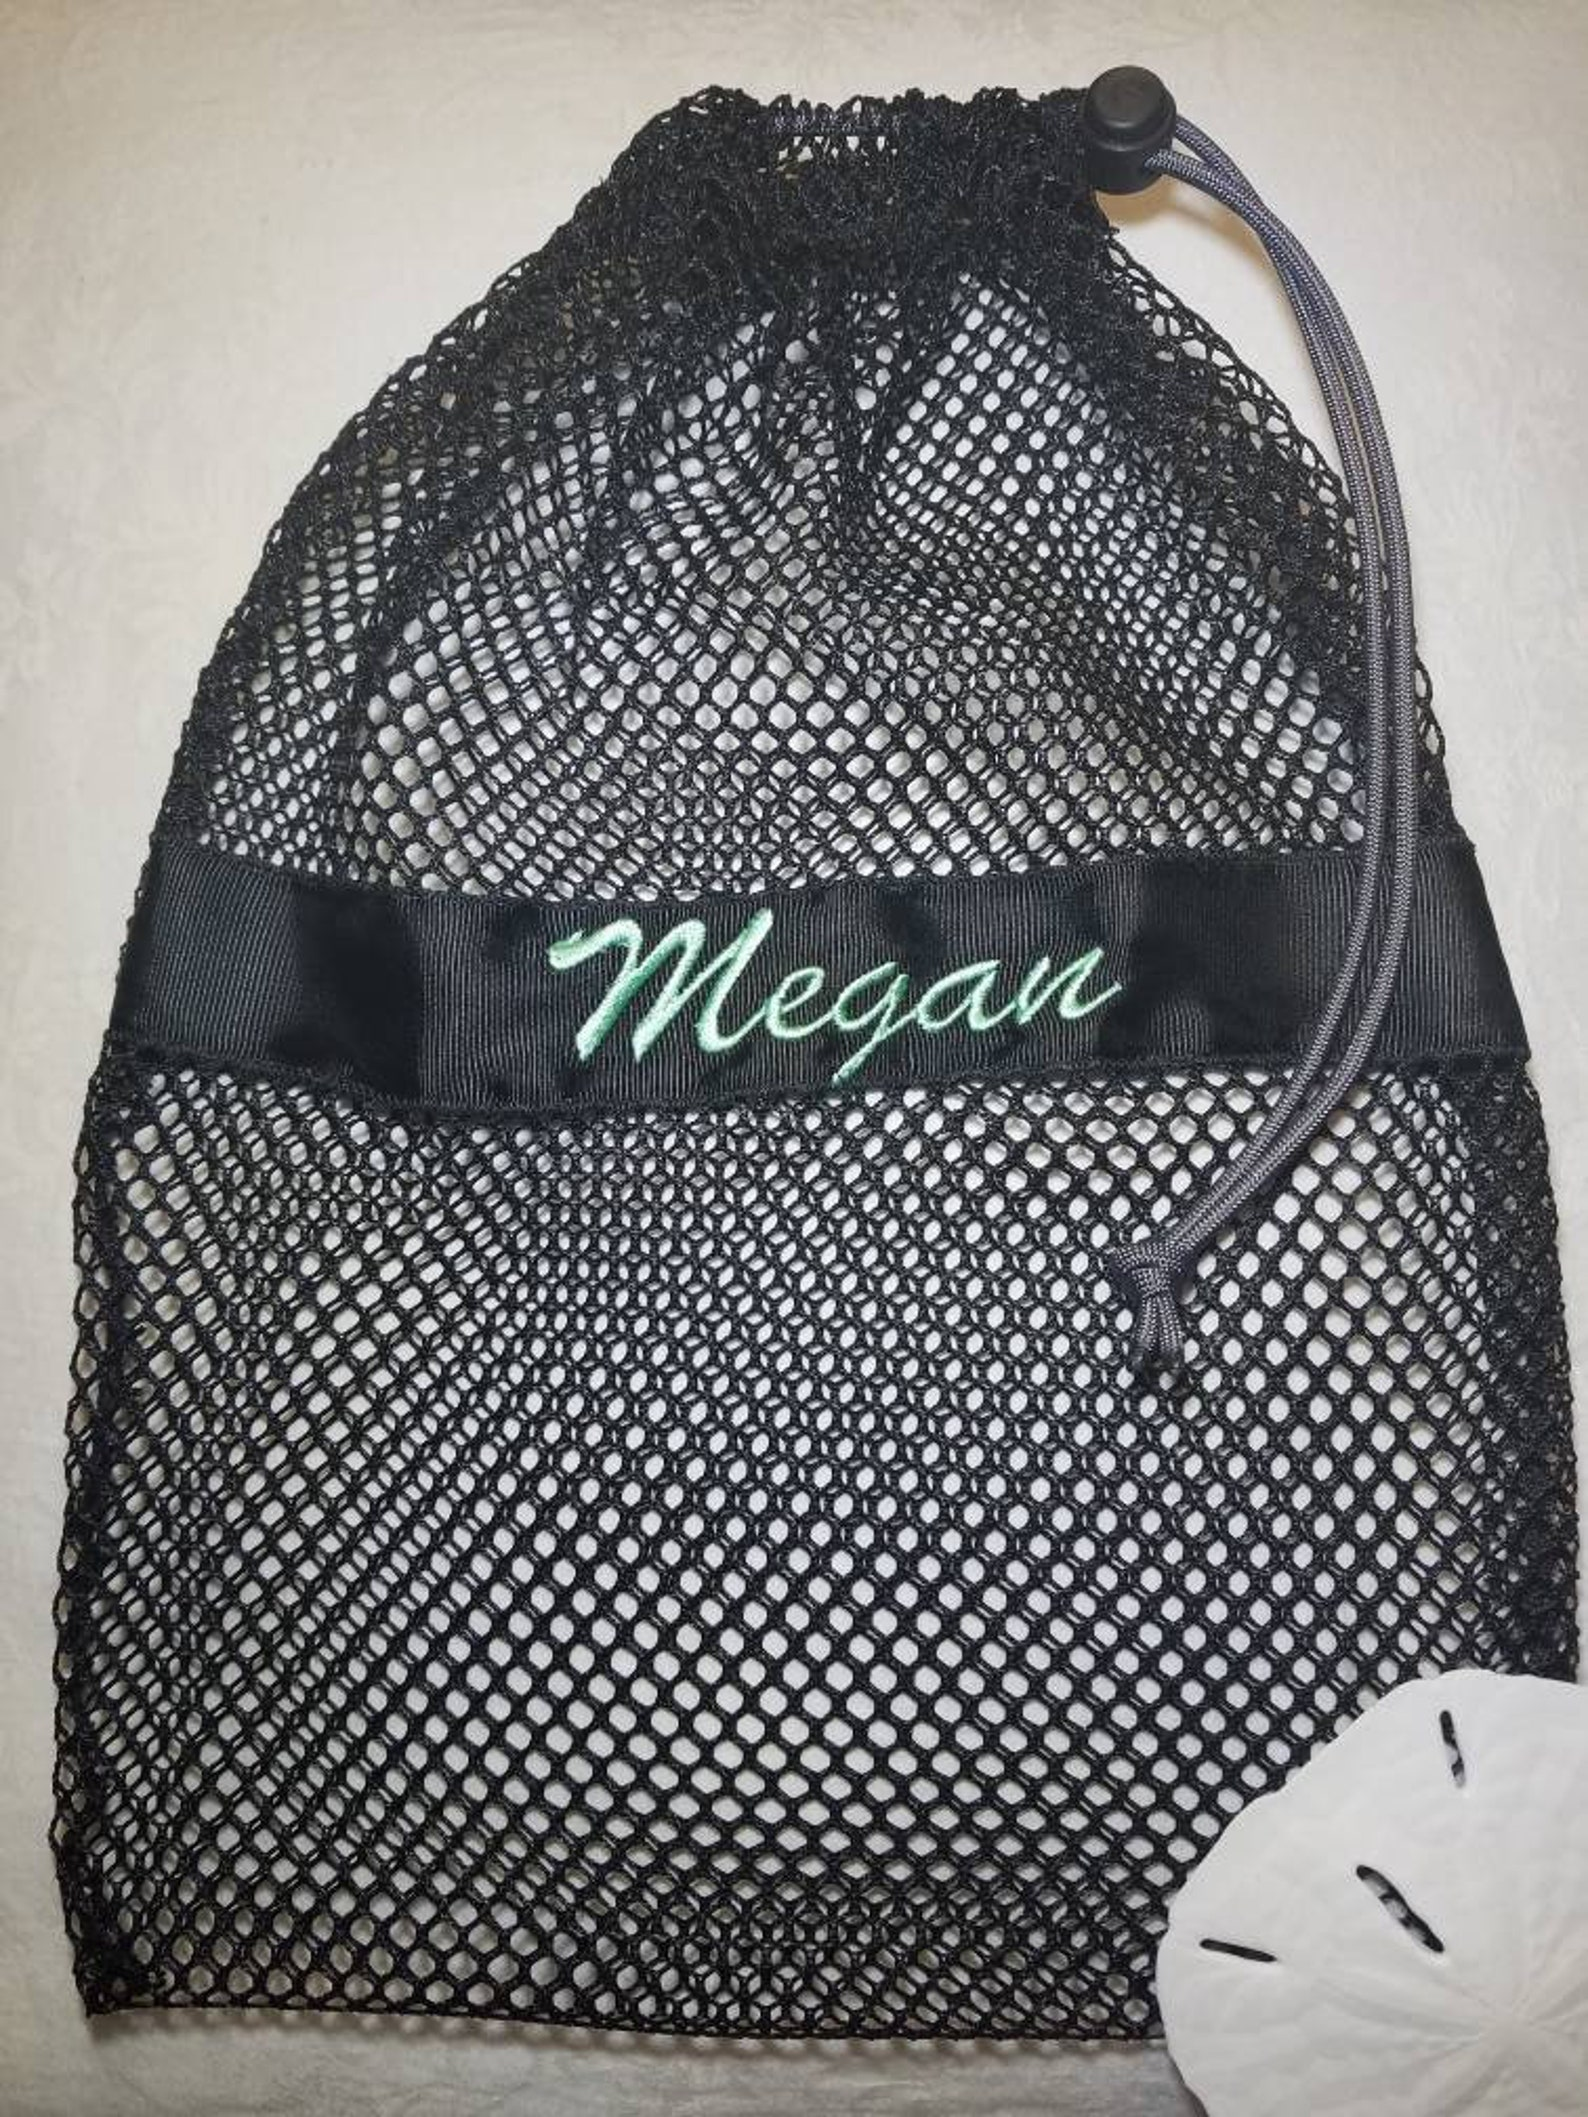 mesh drawstring black large ballet jazz tap pointe shoe glove ditty bag; free shipping within usa; dance team cheer softball gif